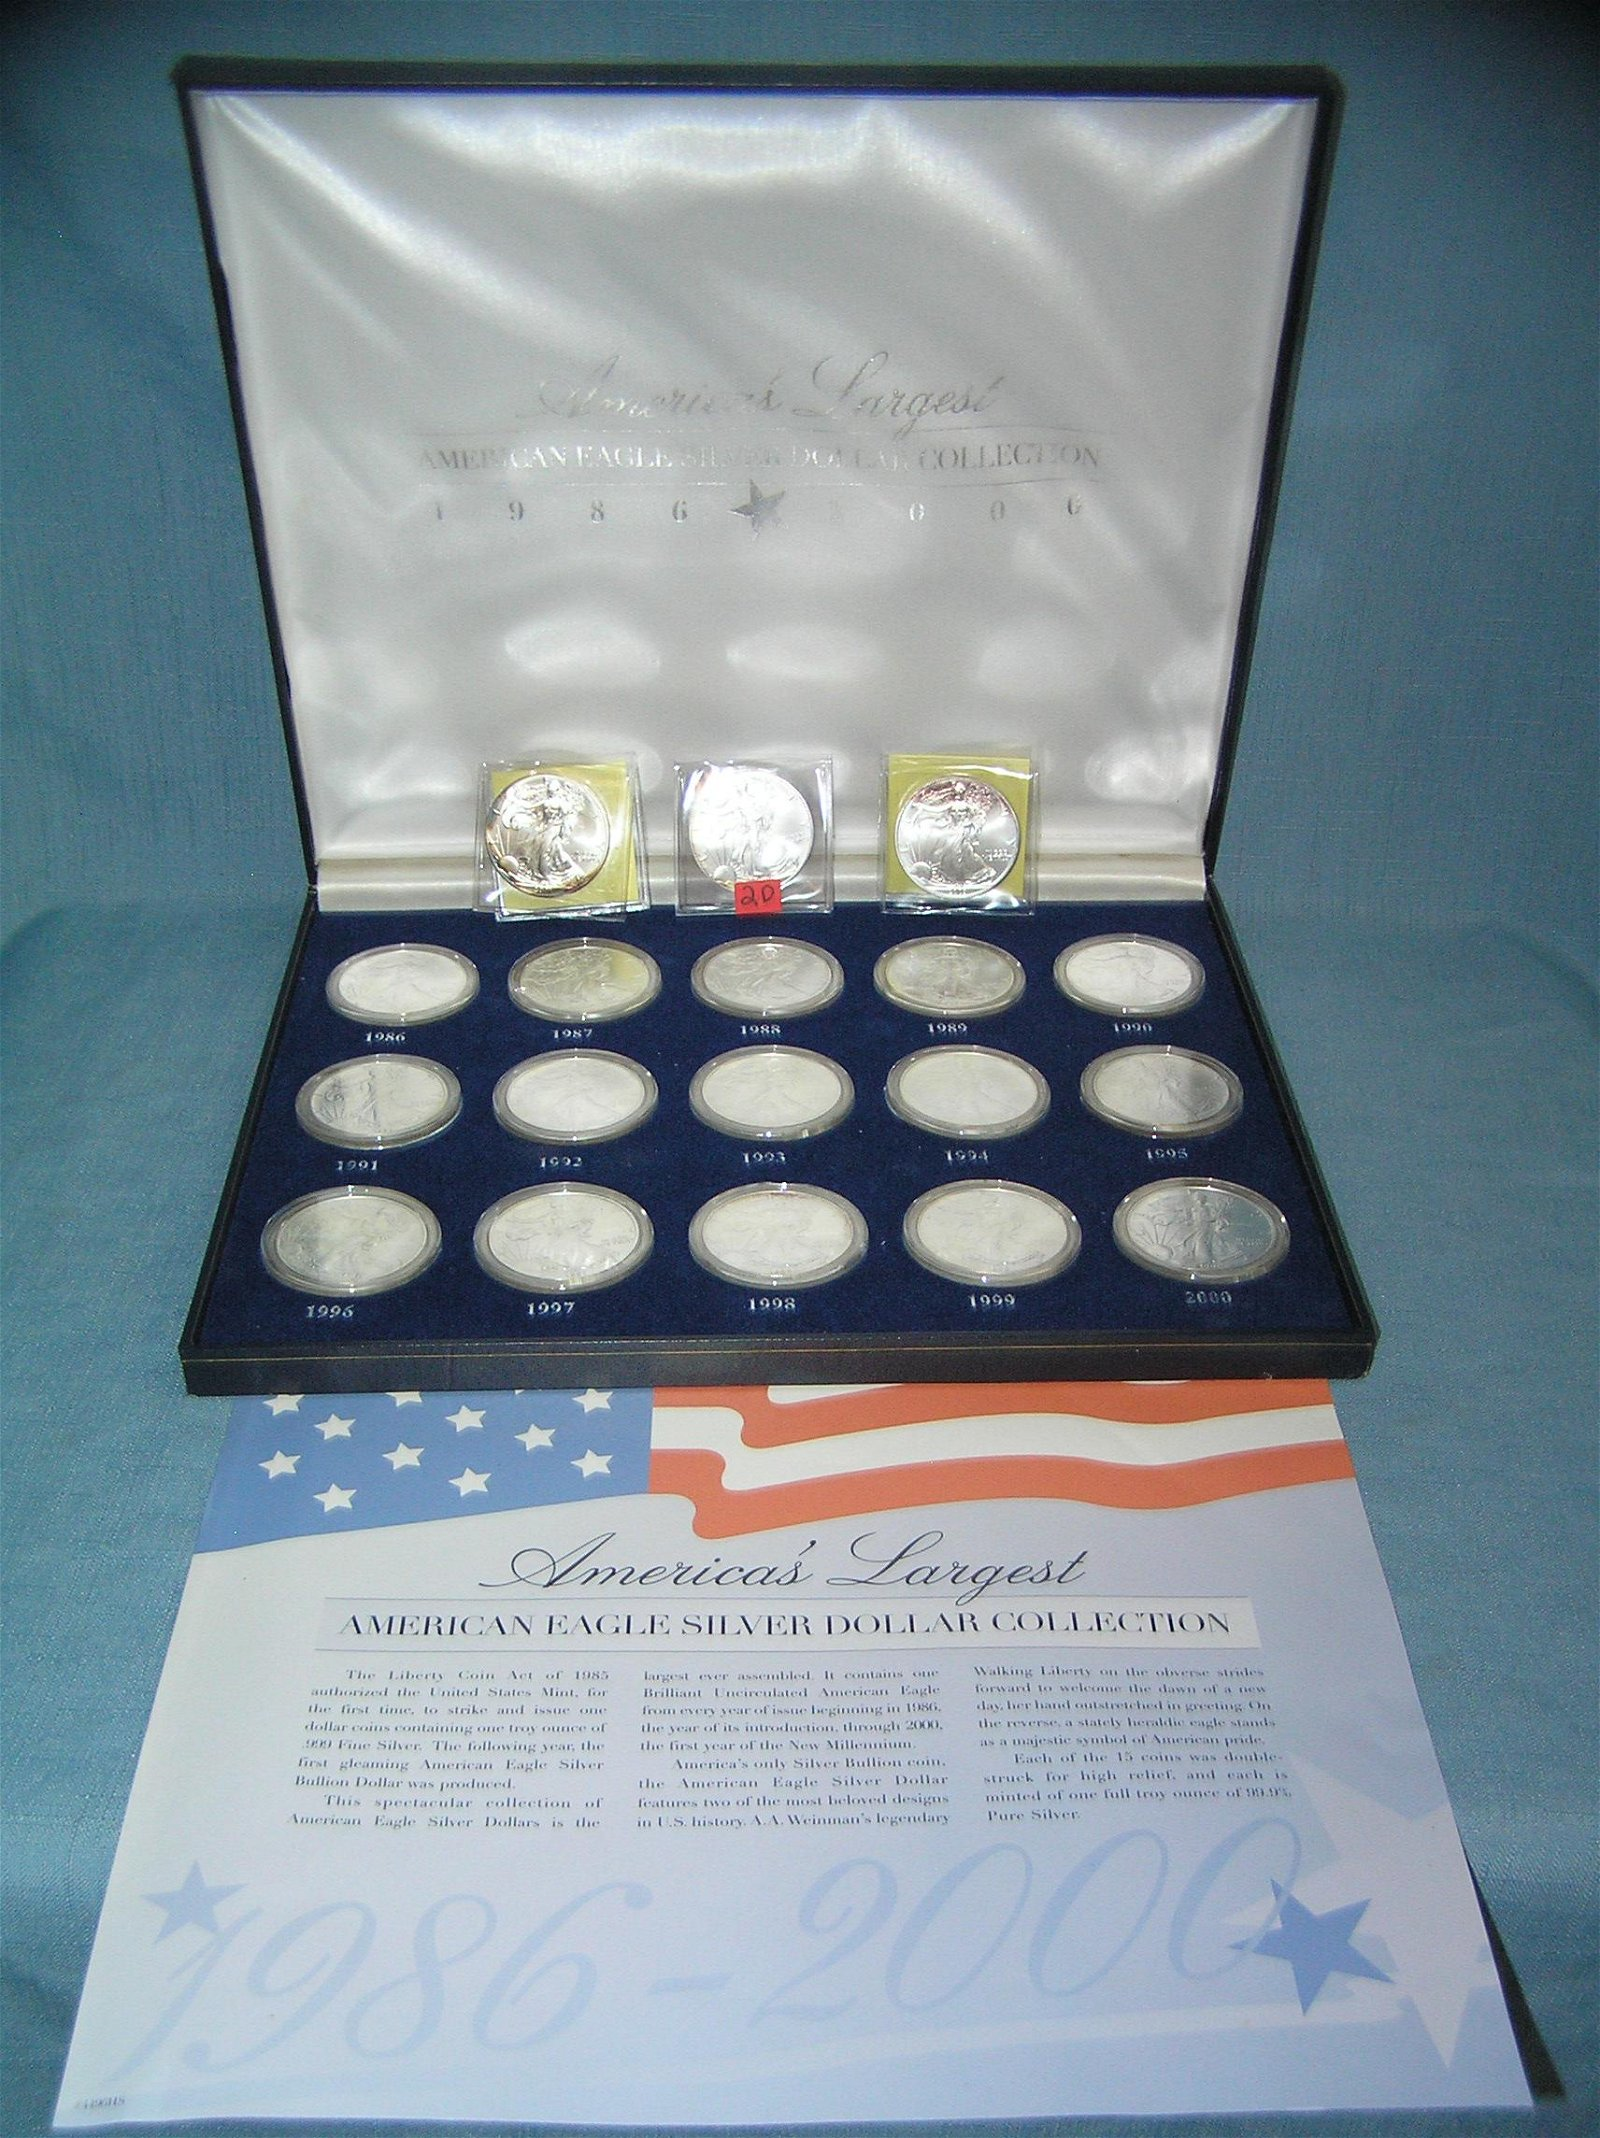 America's largest American silver dollar collection